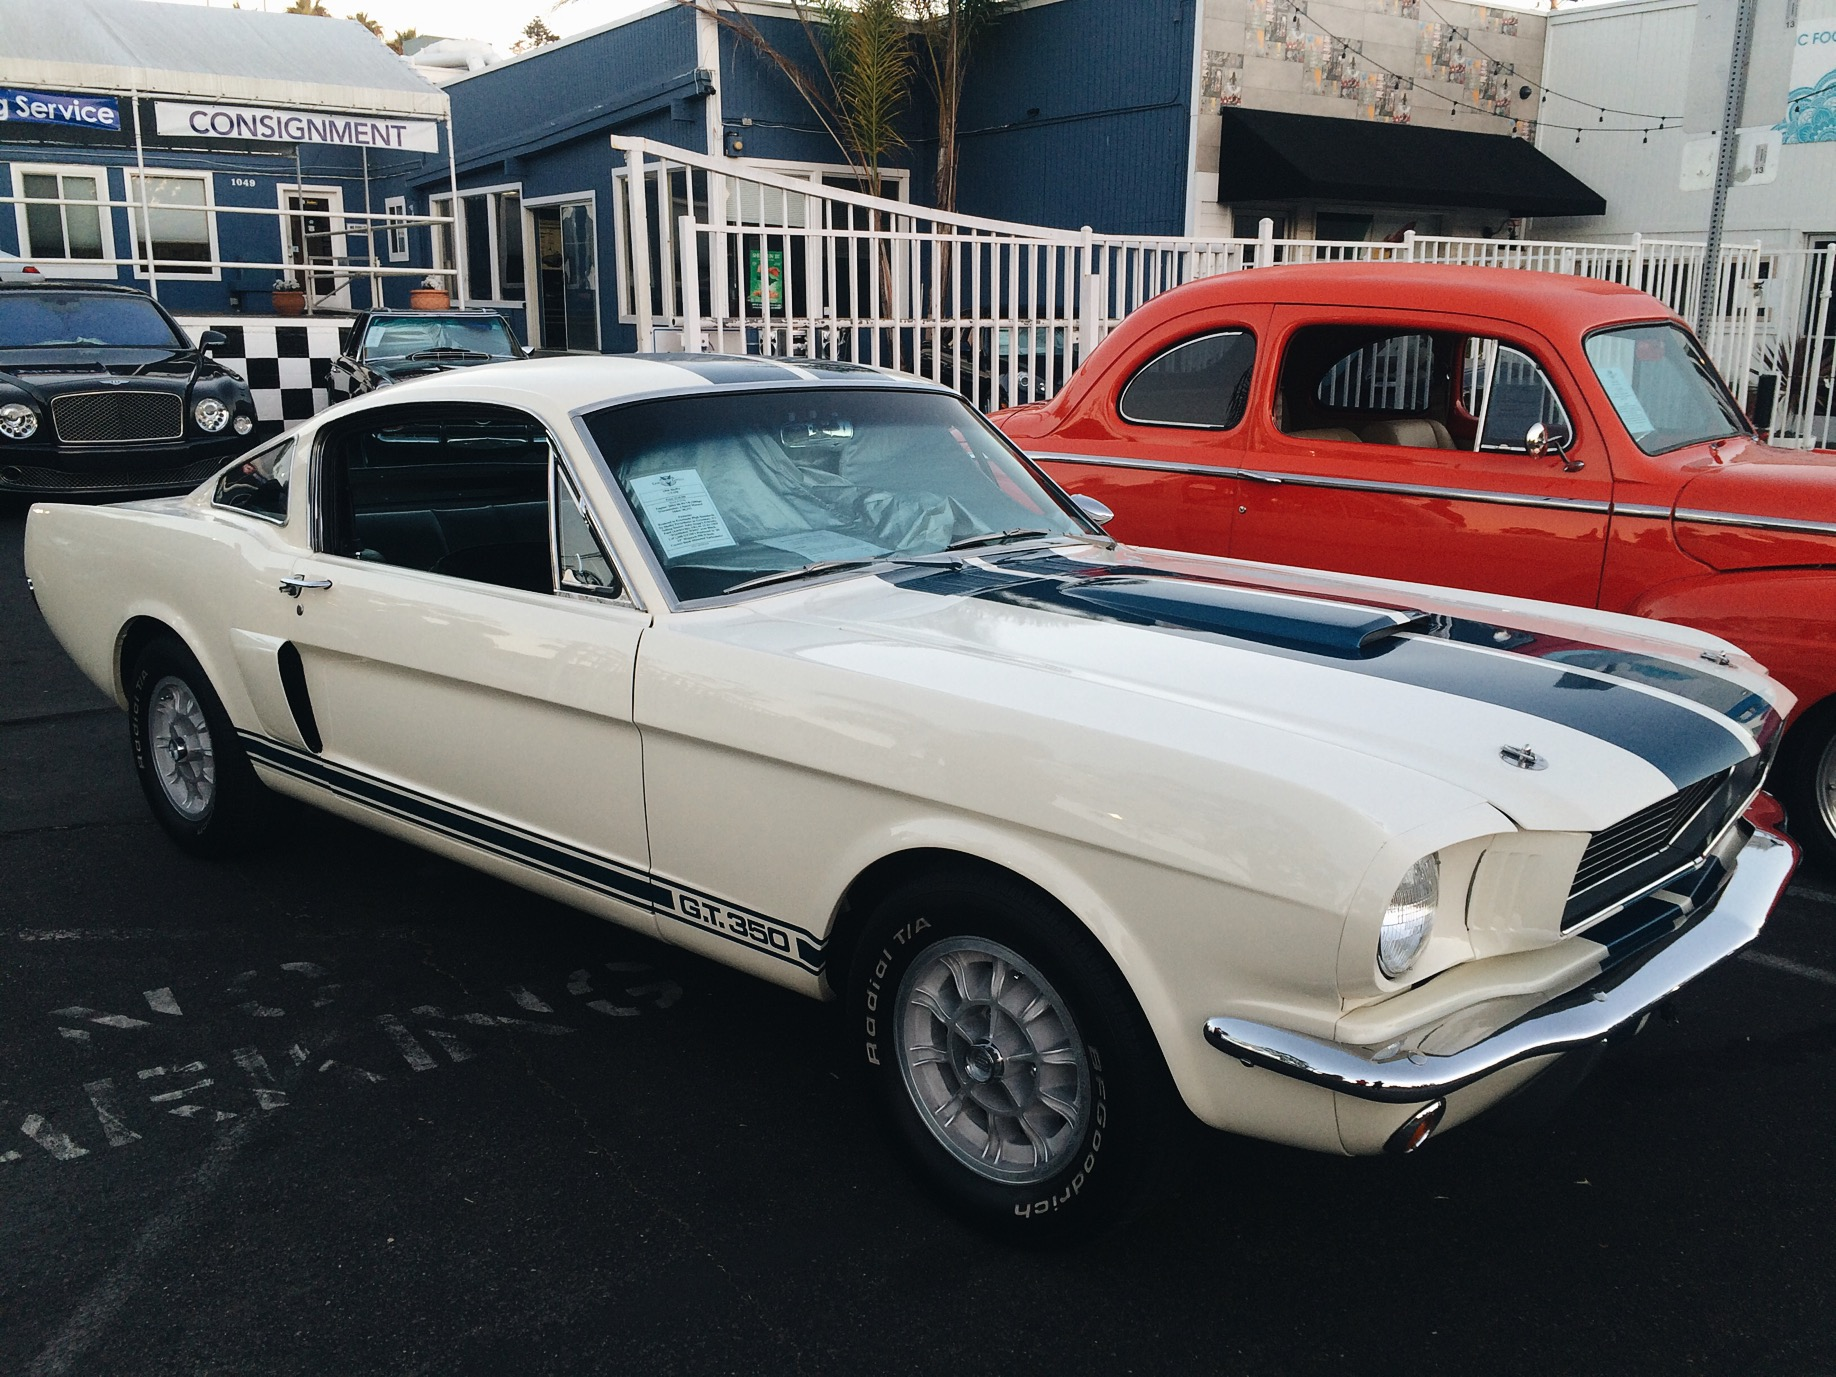 The answer is this 1965 Ford Mustang GT350, with a tag for $149,000 and the Bentley at $132,000.